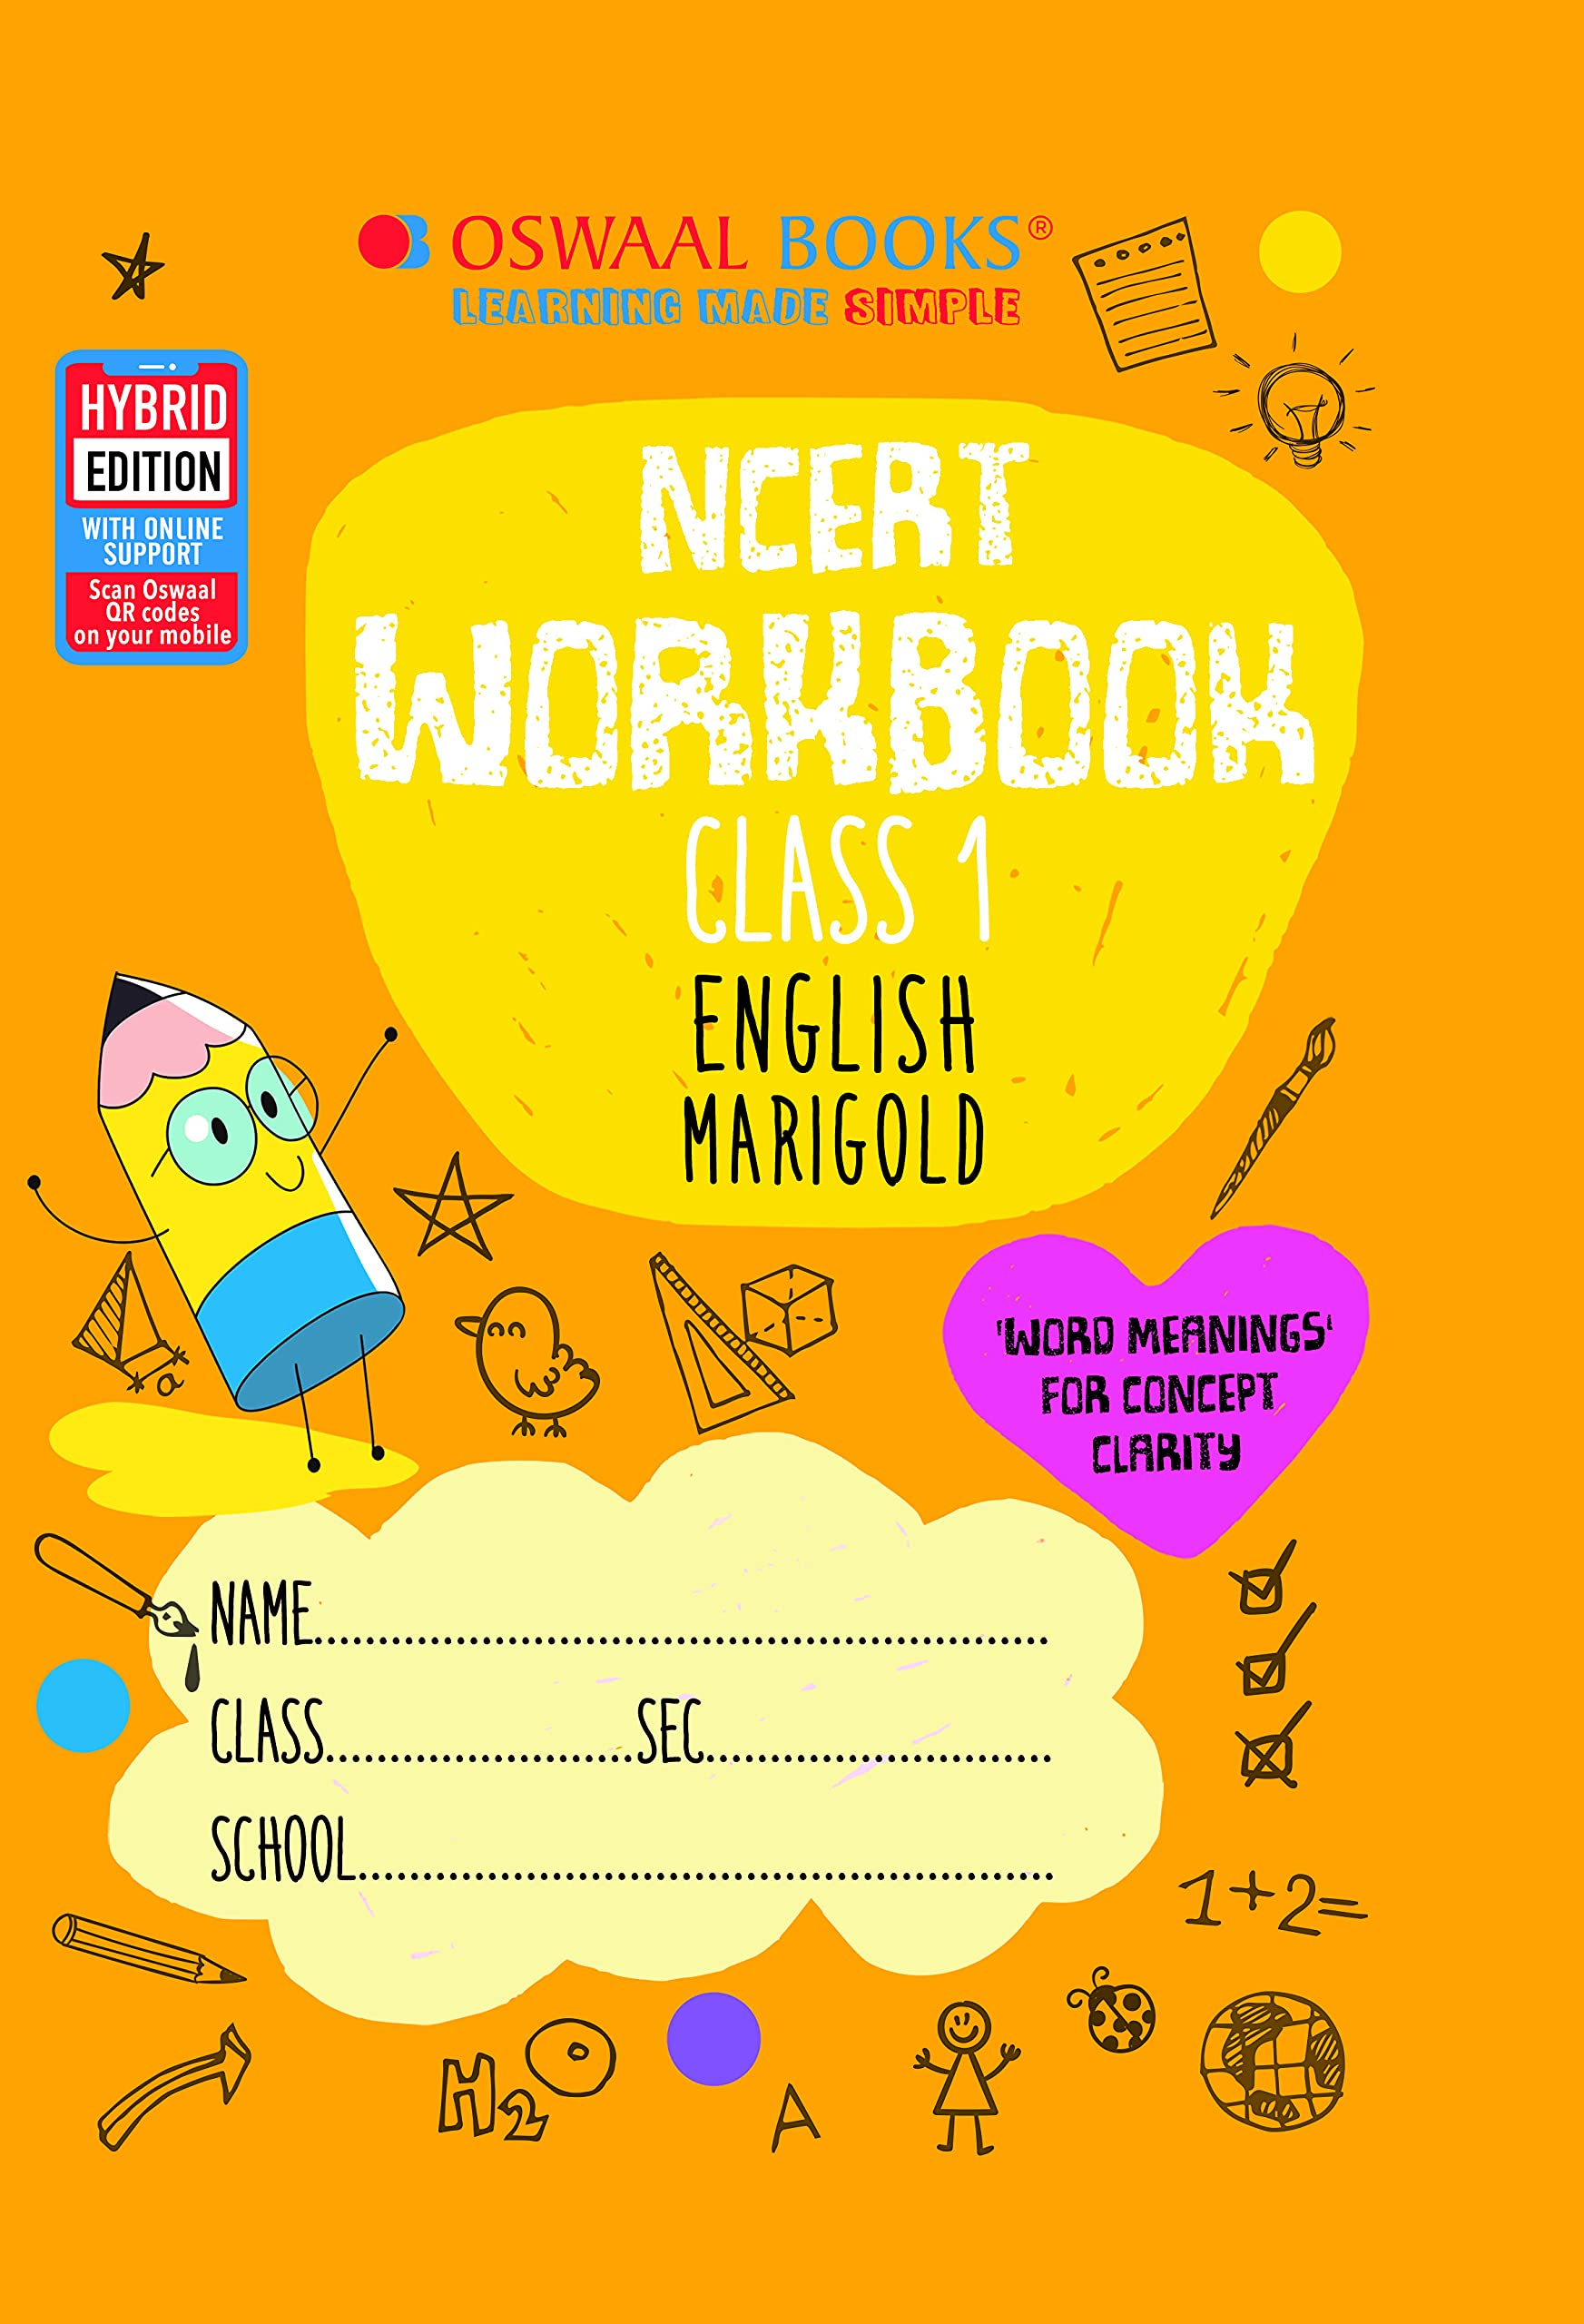 Oswaal NCERT Workbook Class 1, English (For 2022 Exam)